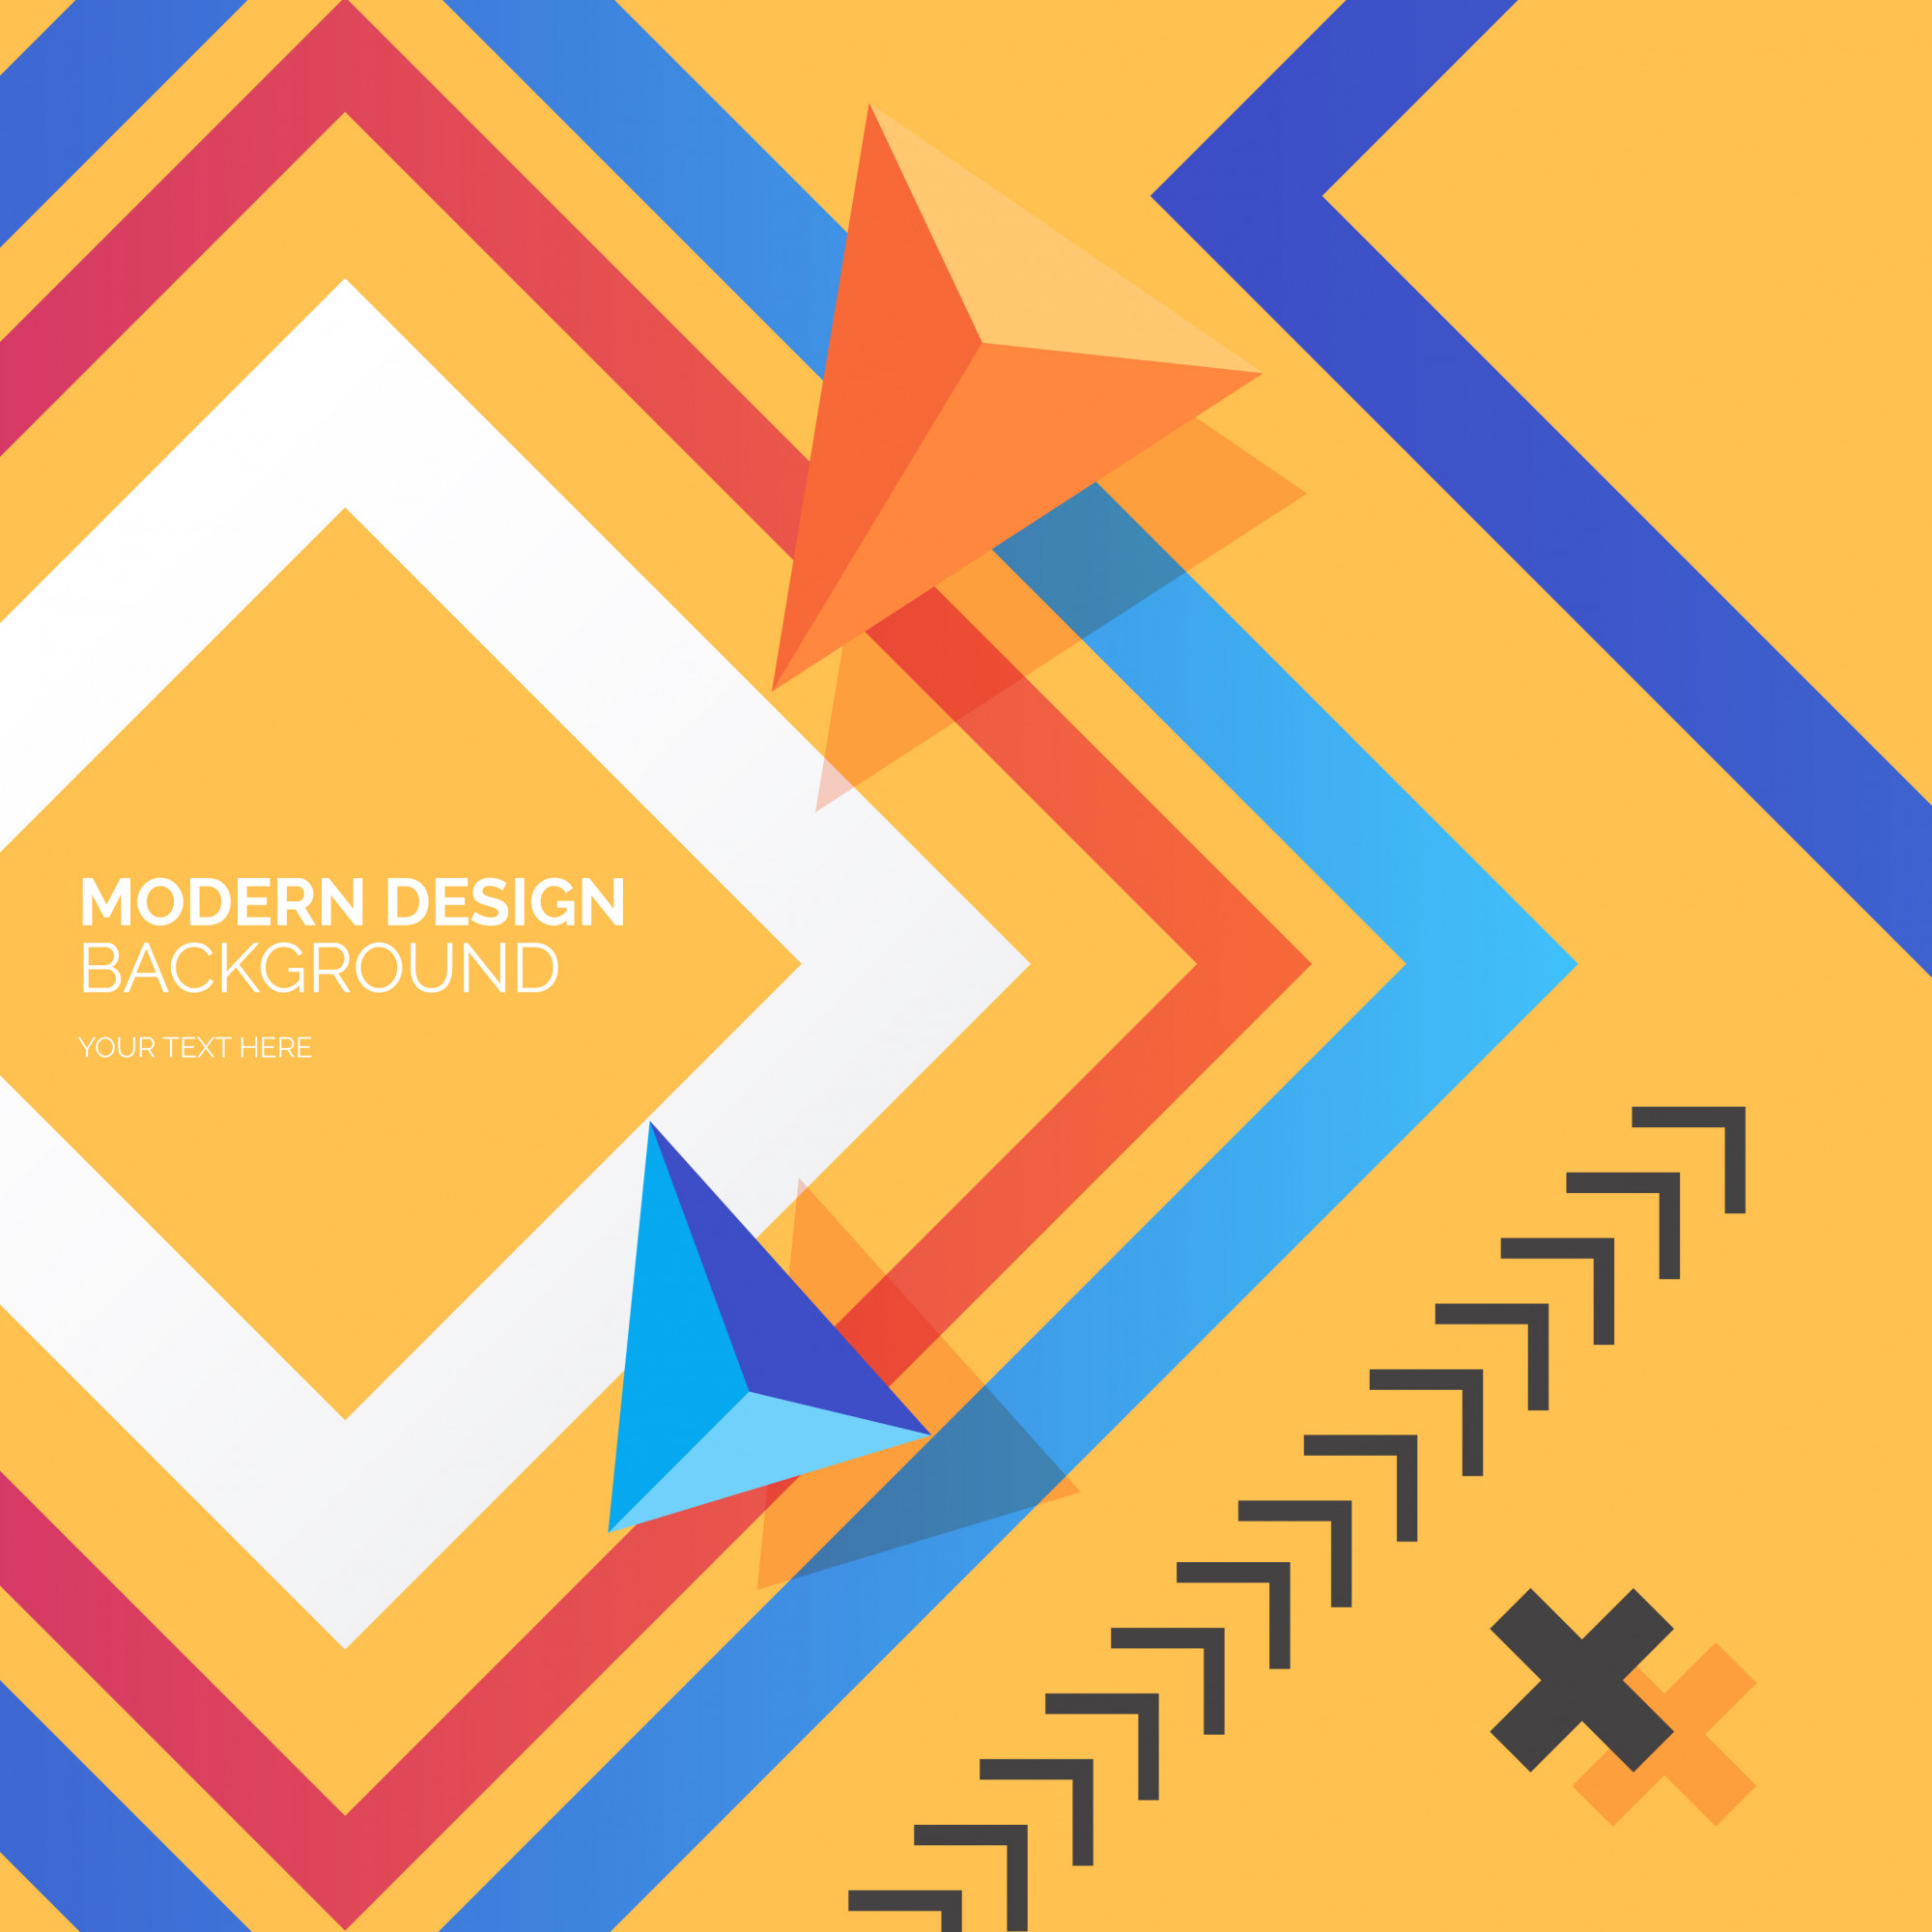 Modern Design Background with Colorful Shapes